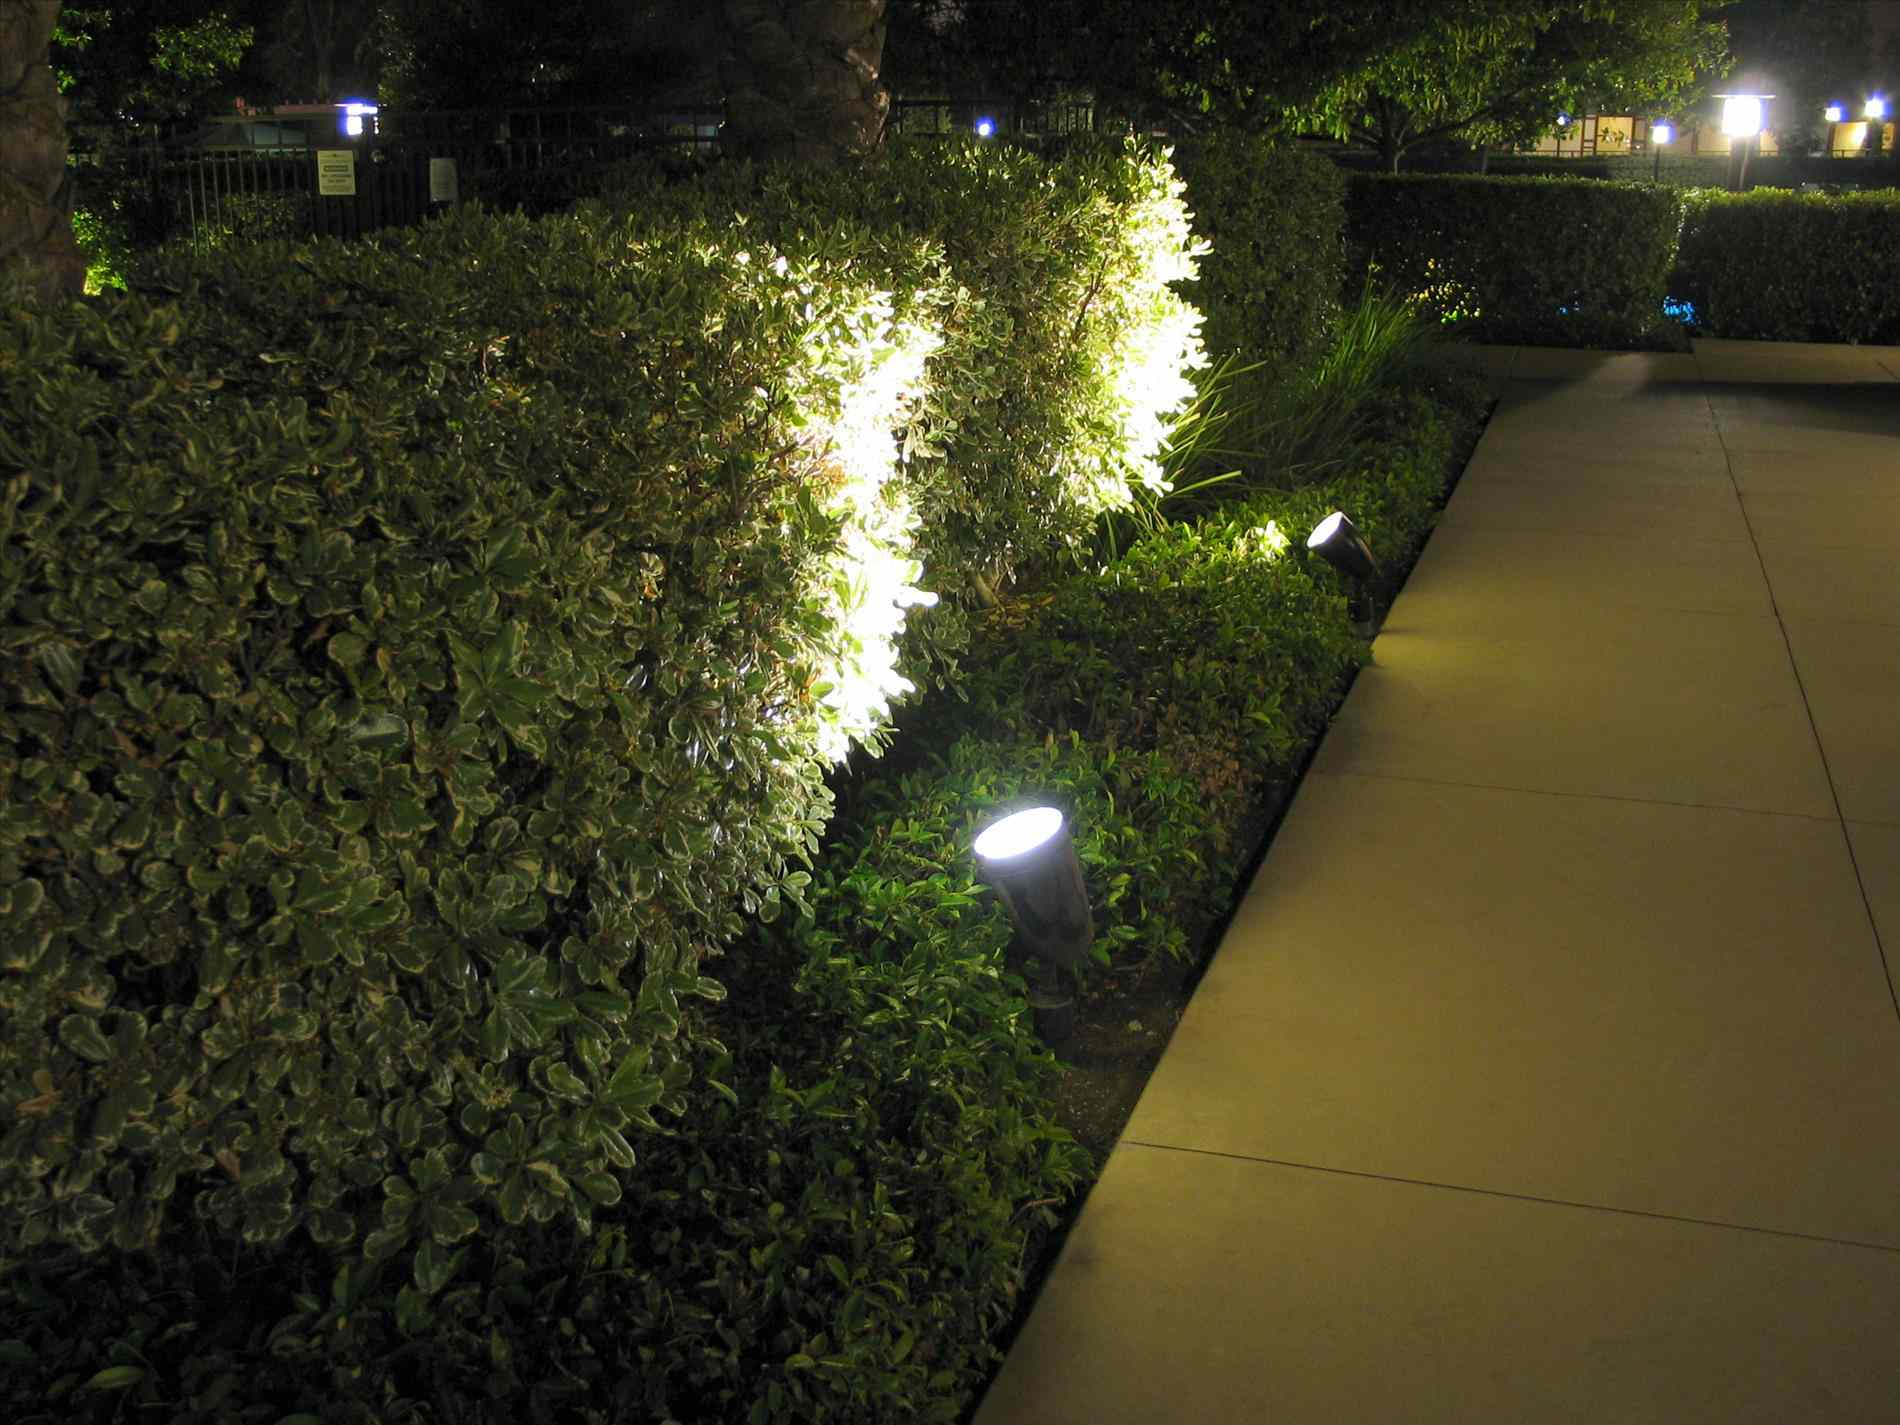 Landscape lighting for beautiful lawn at night